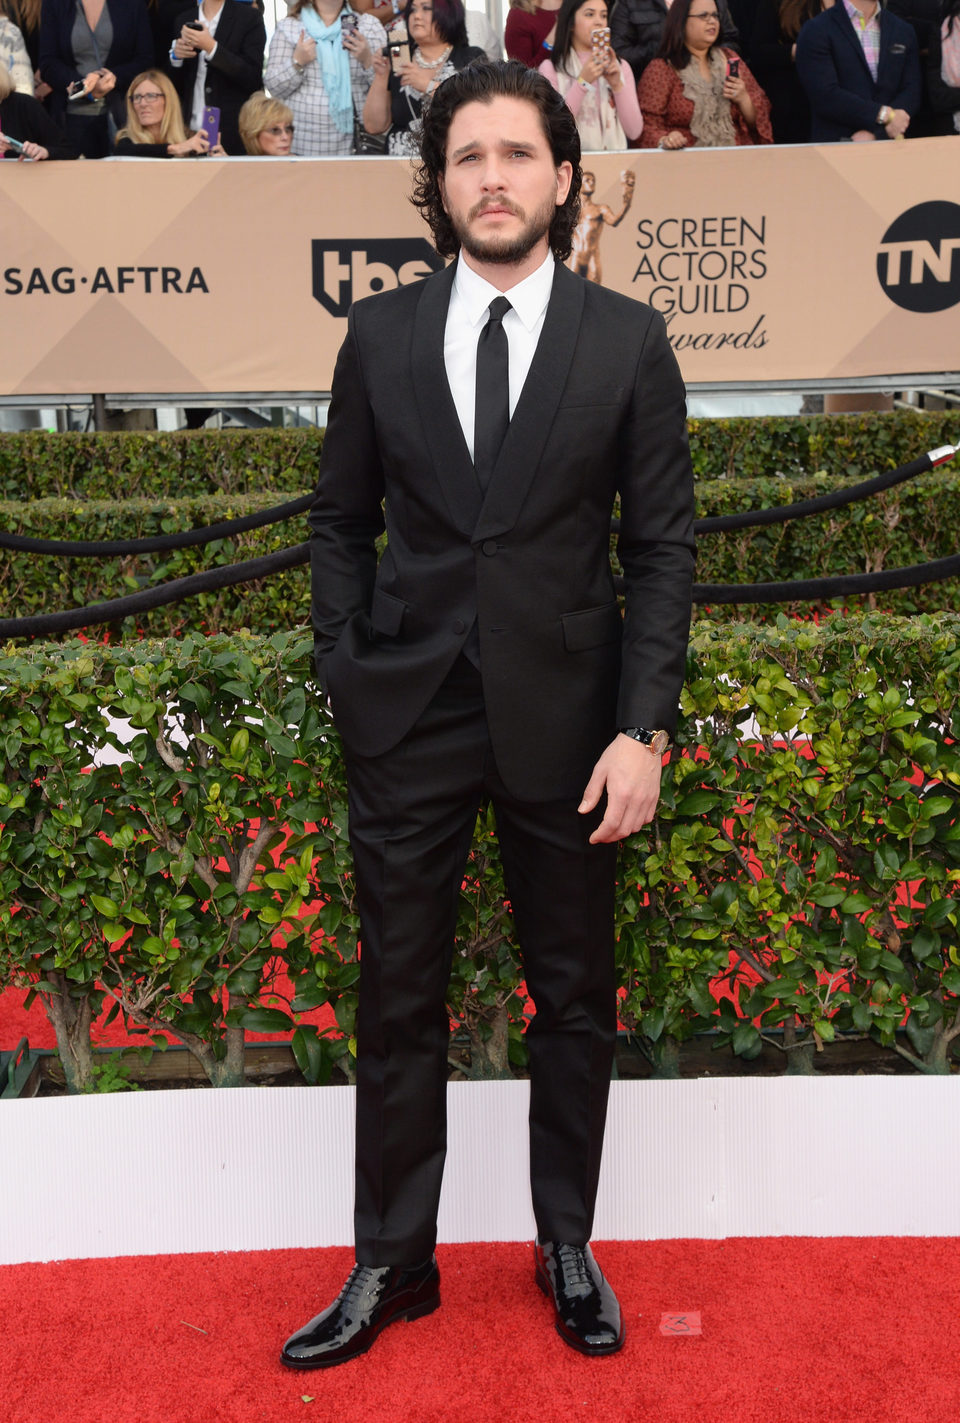 Kit Harington in the red carpet of SAG Awards 2016